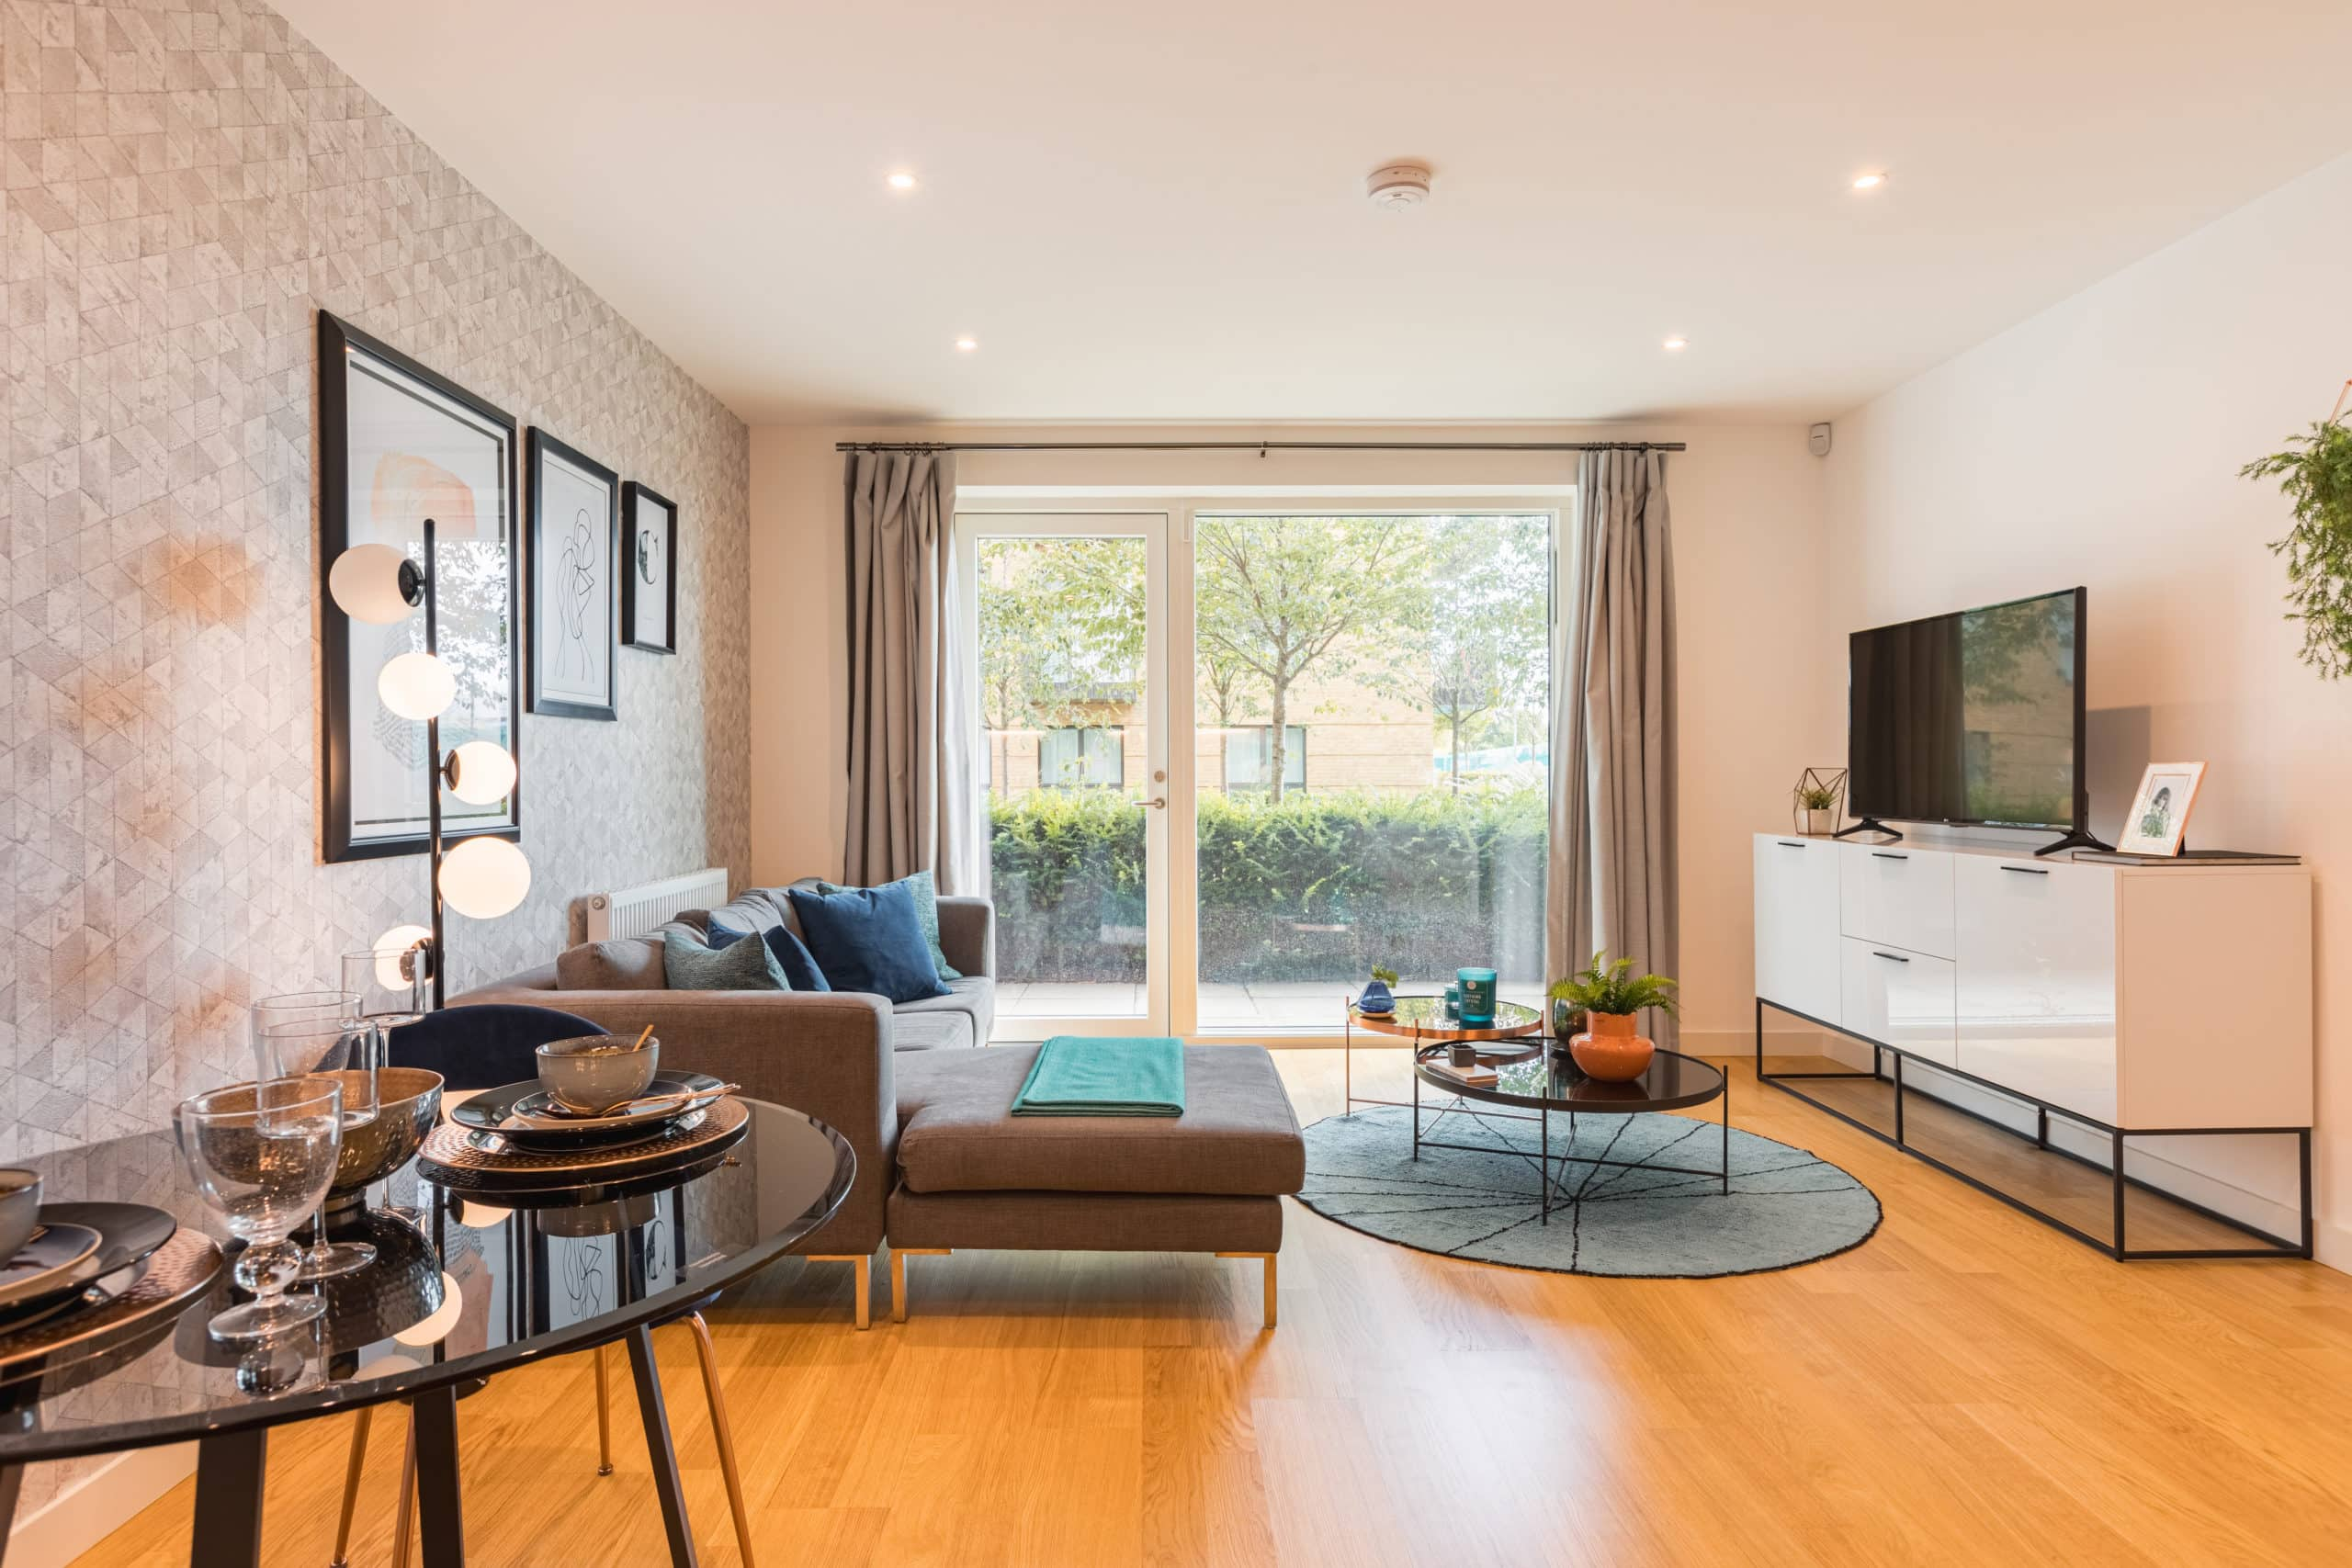 Show Home photography by Catalyst - available on Share to Buy